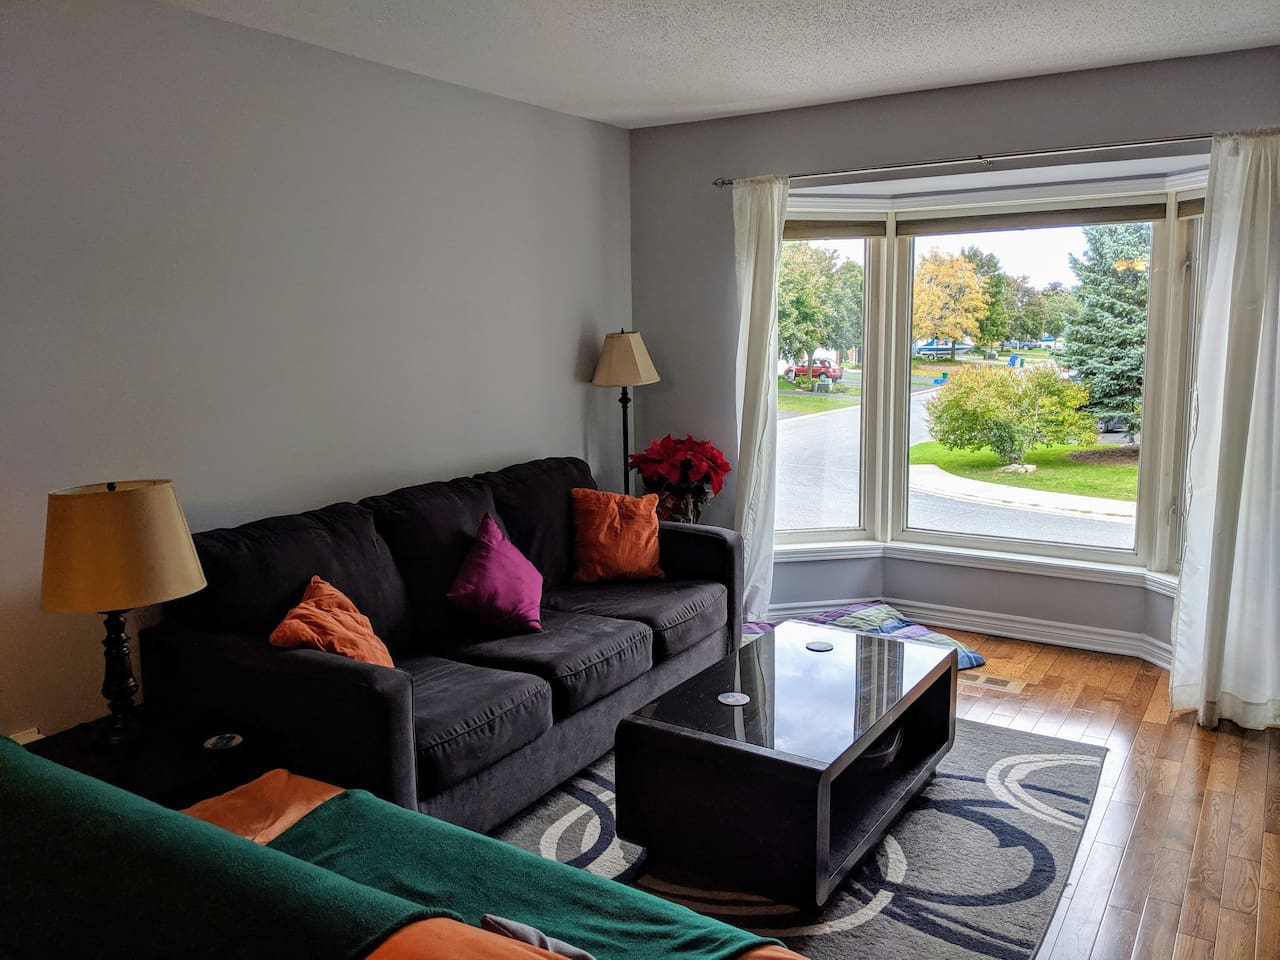 The comfy living room offers a bright bay window, queen-size sofa bed and futon (seating only).